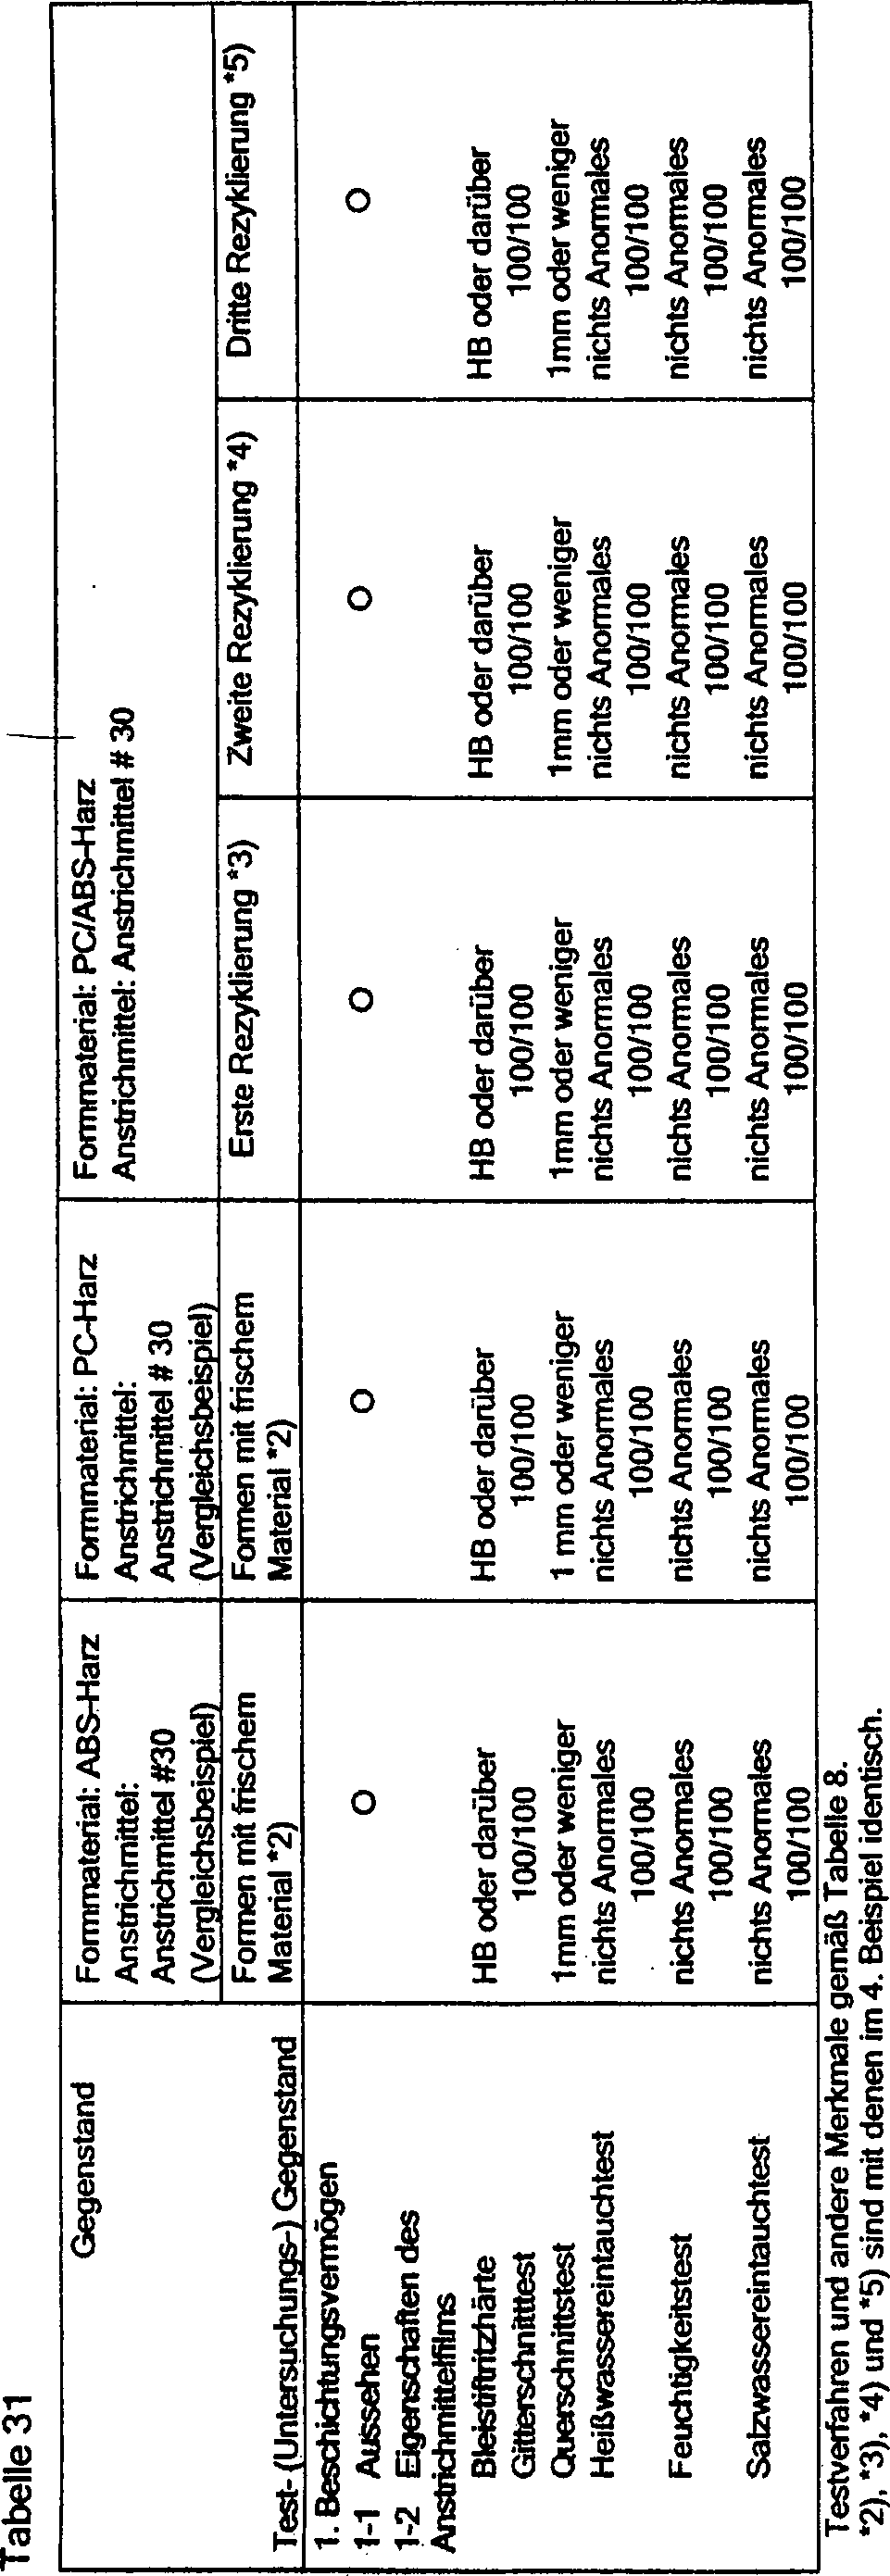 DE69725847T2   Coated shaped object, proceed to regain this